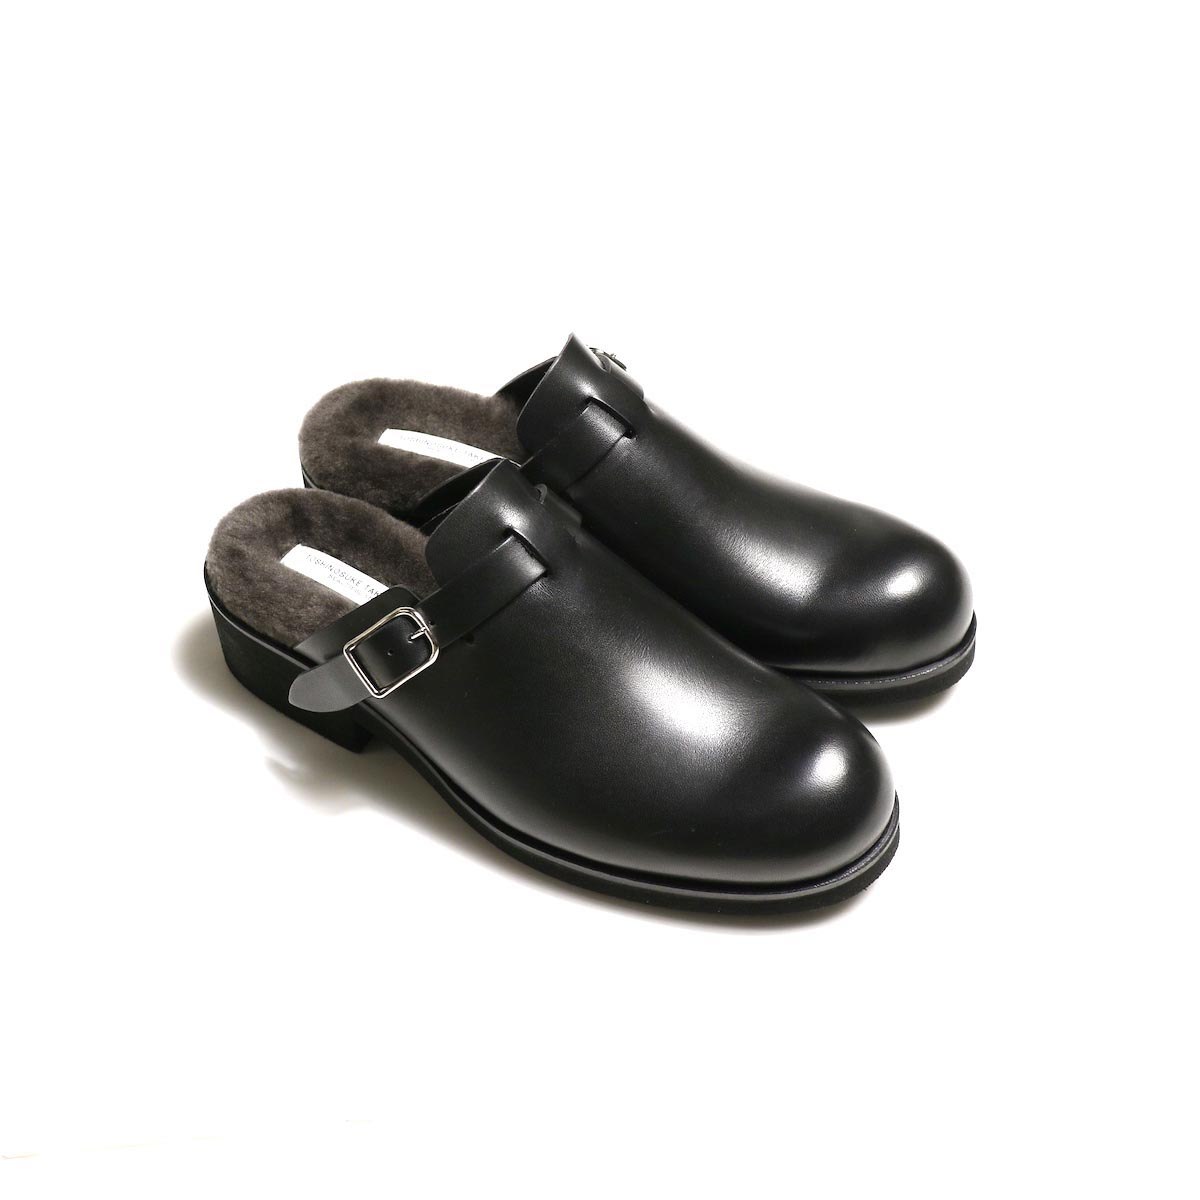 BEAUTIFUL SHOES / SLIPON CLOGS